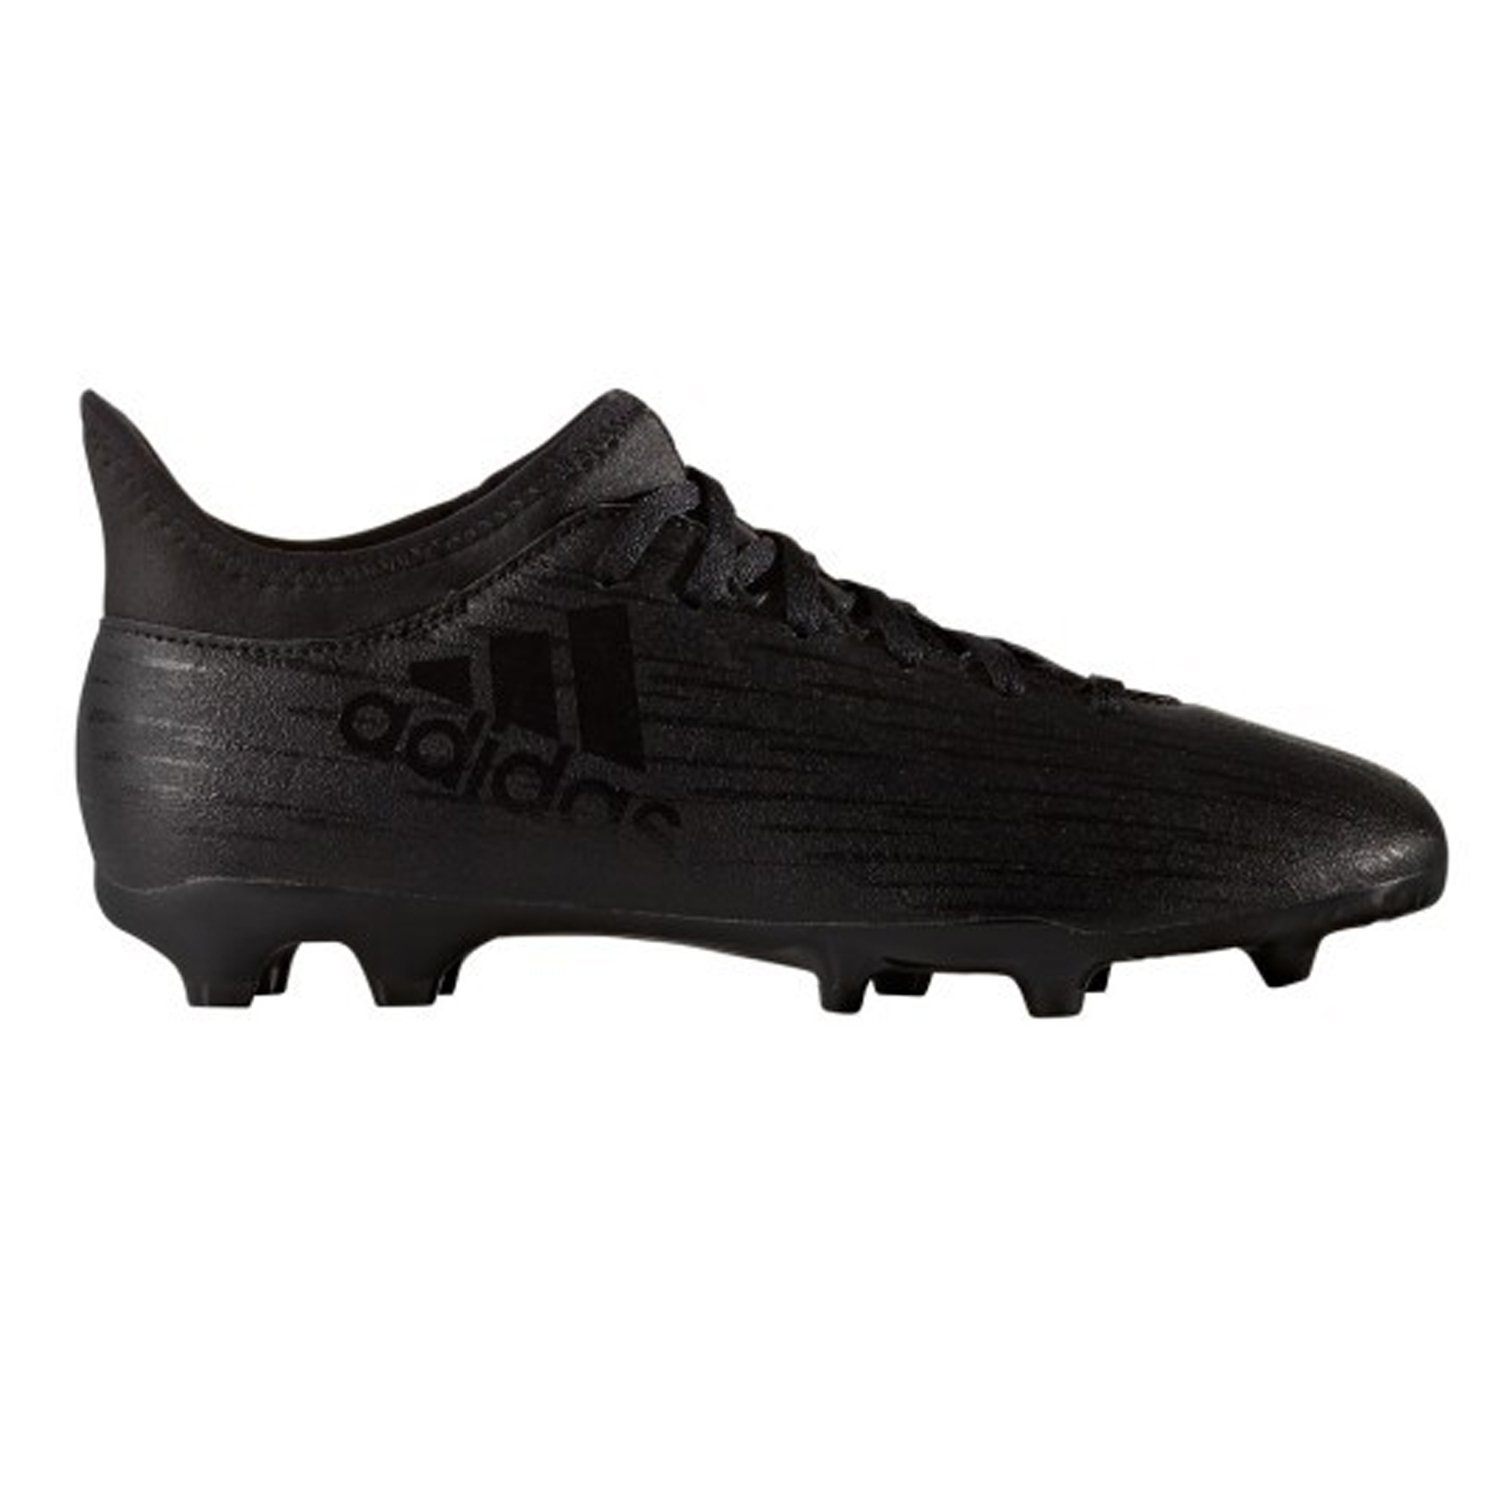 adidas X16.3 Fg J BlackBlackGrey 1: Amazon.co.uk: Sports